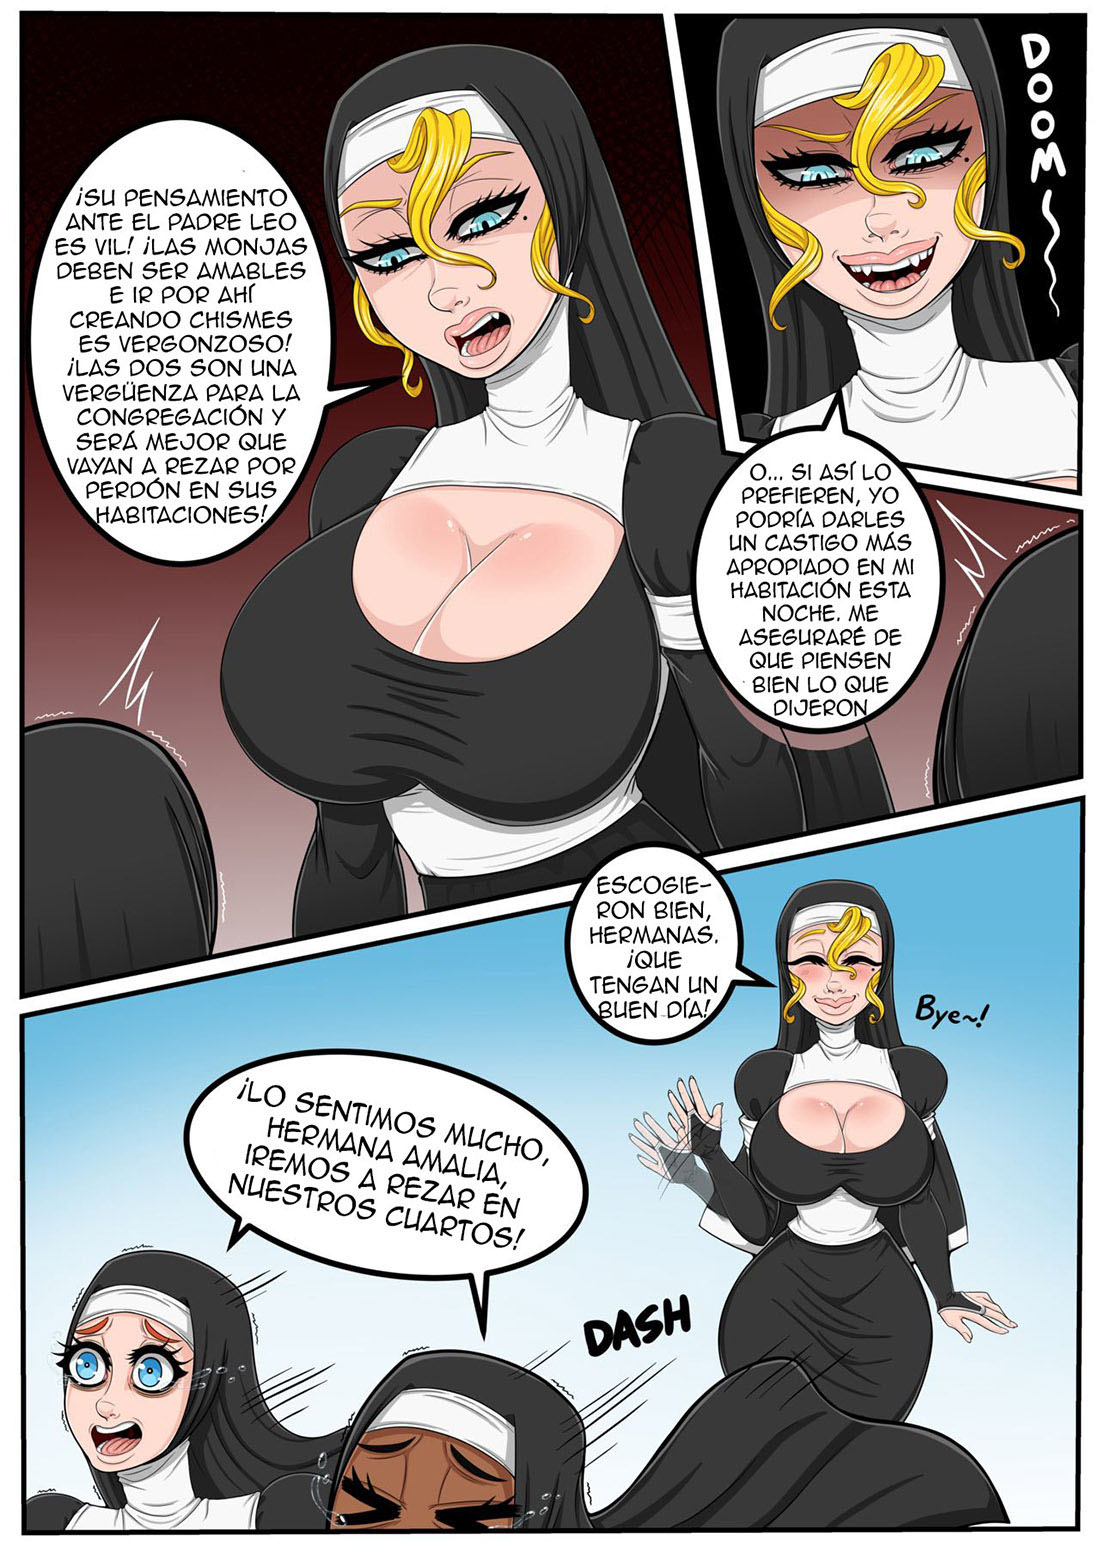 The NUN and her PRIEST